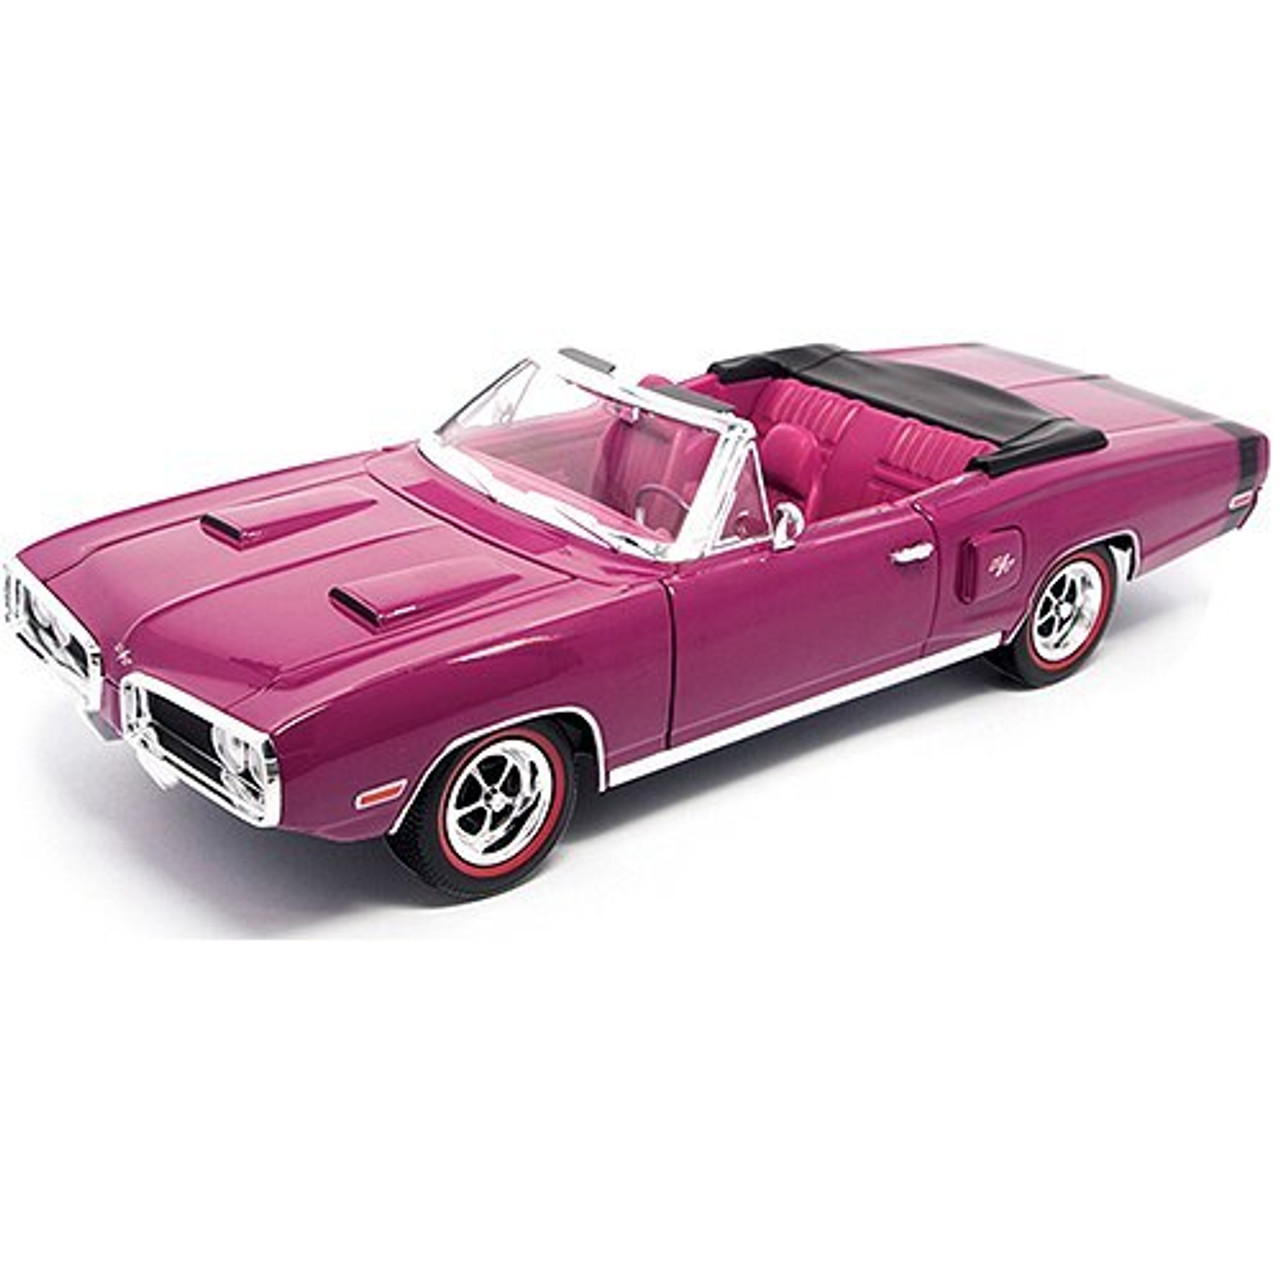 1970 Dodge Coronet R T Convertible 1 18 Scale Diecast Model By Road Signature Collectable Diecast